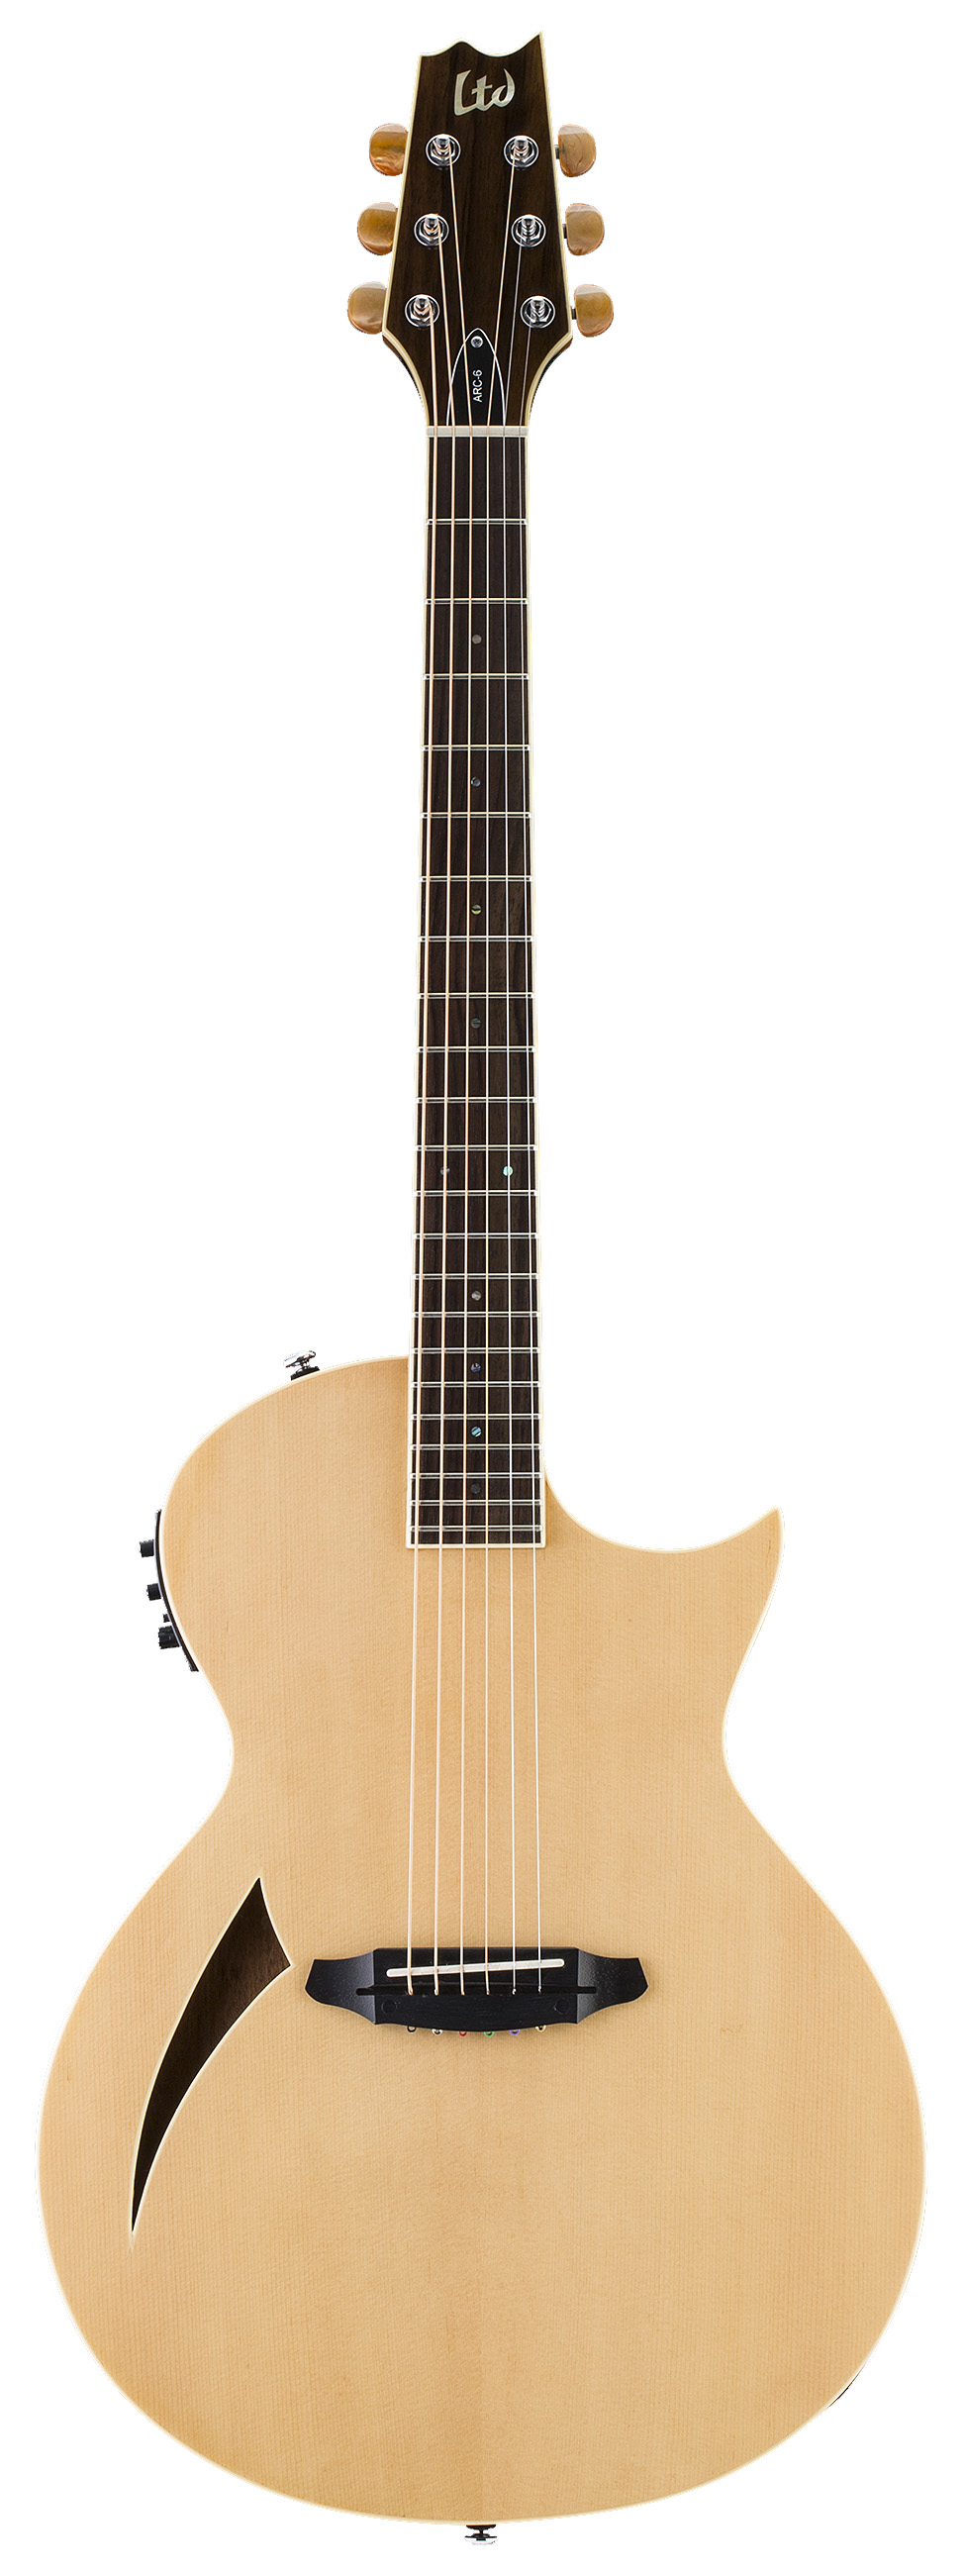 ESP LTD ARC-6 NAT Arc Series Electric Guitar with Spruce Top and Natural Finish